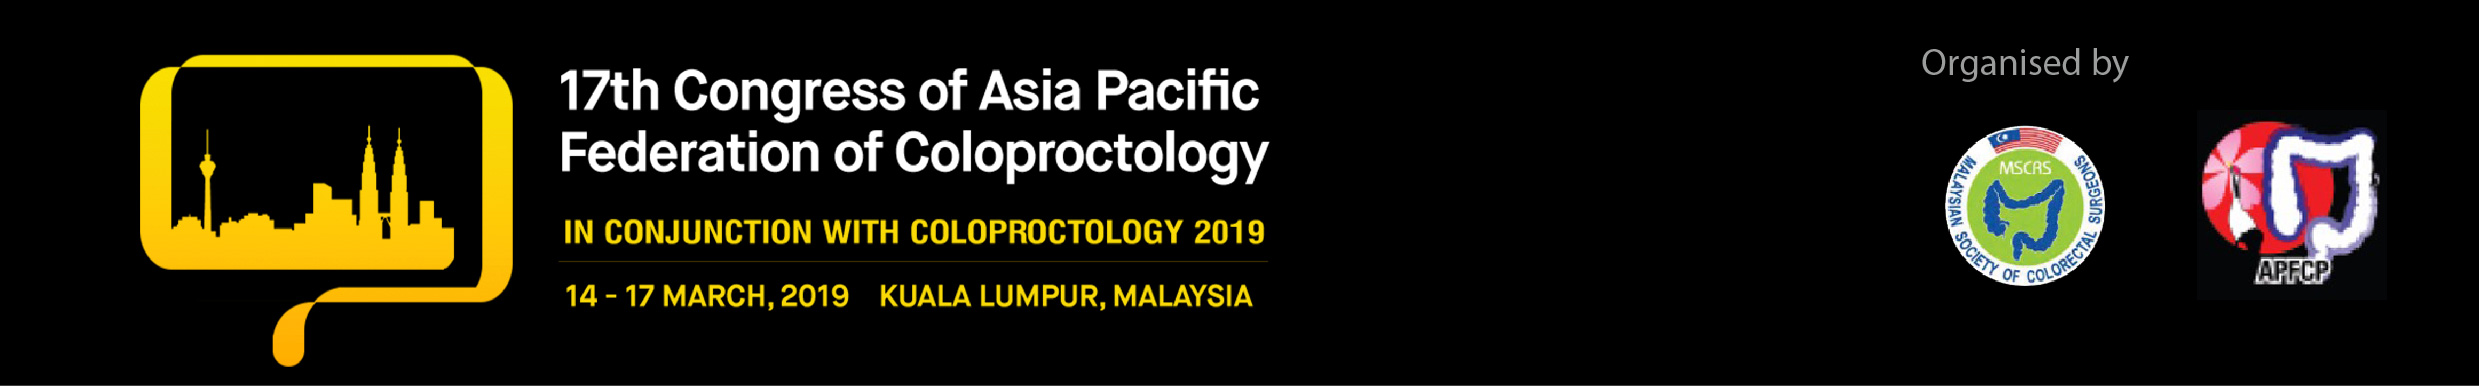 17th Congress of Asia Pacific Federation of Coloproctology (APFCP 2019)